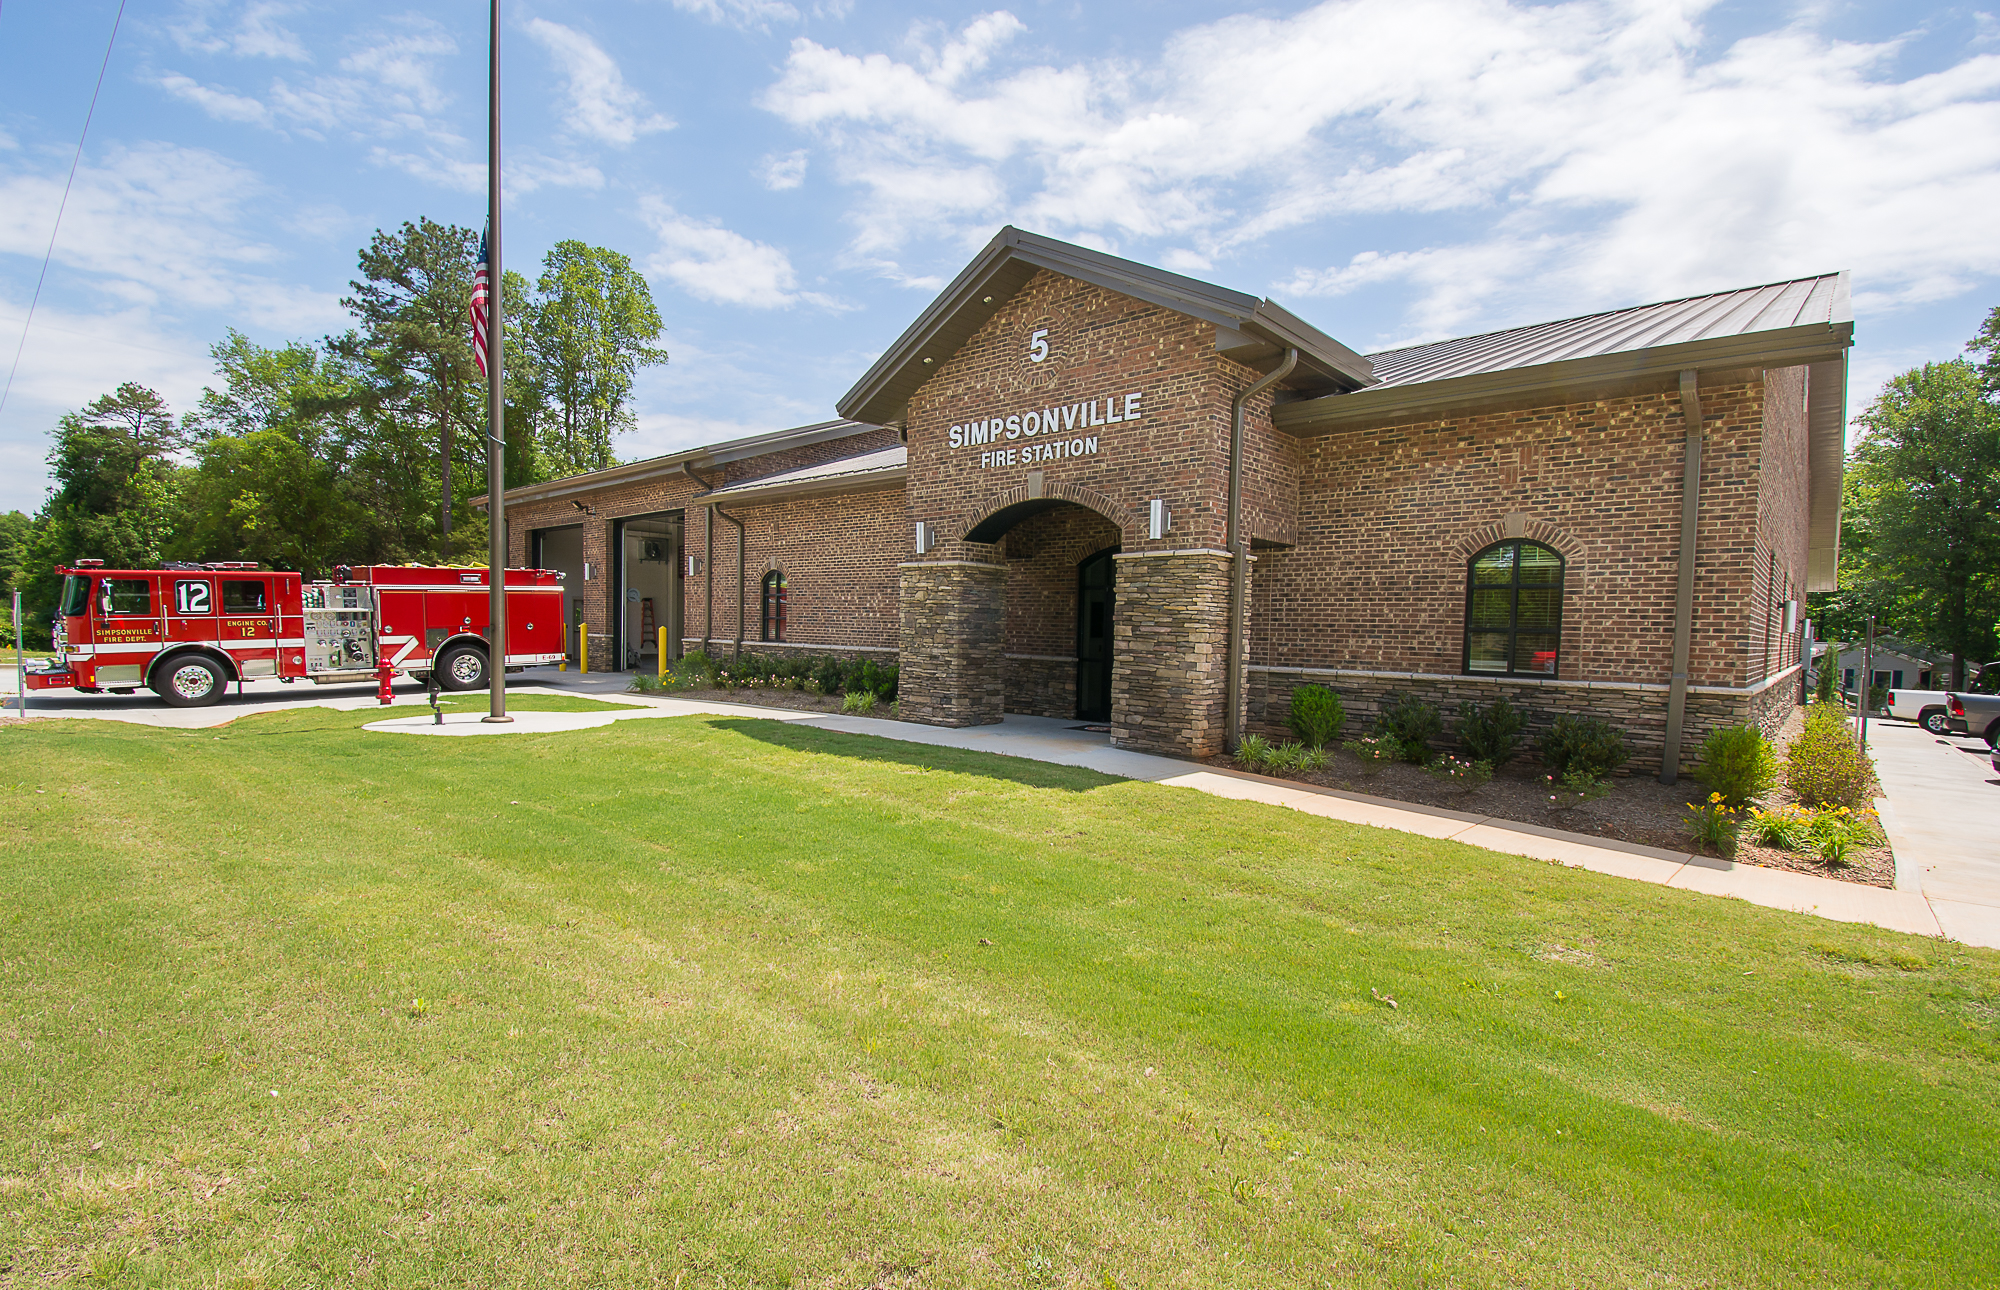 Simpsonville Fire Station 5-1.JPG